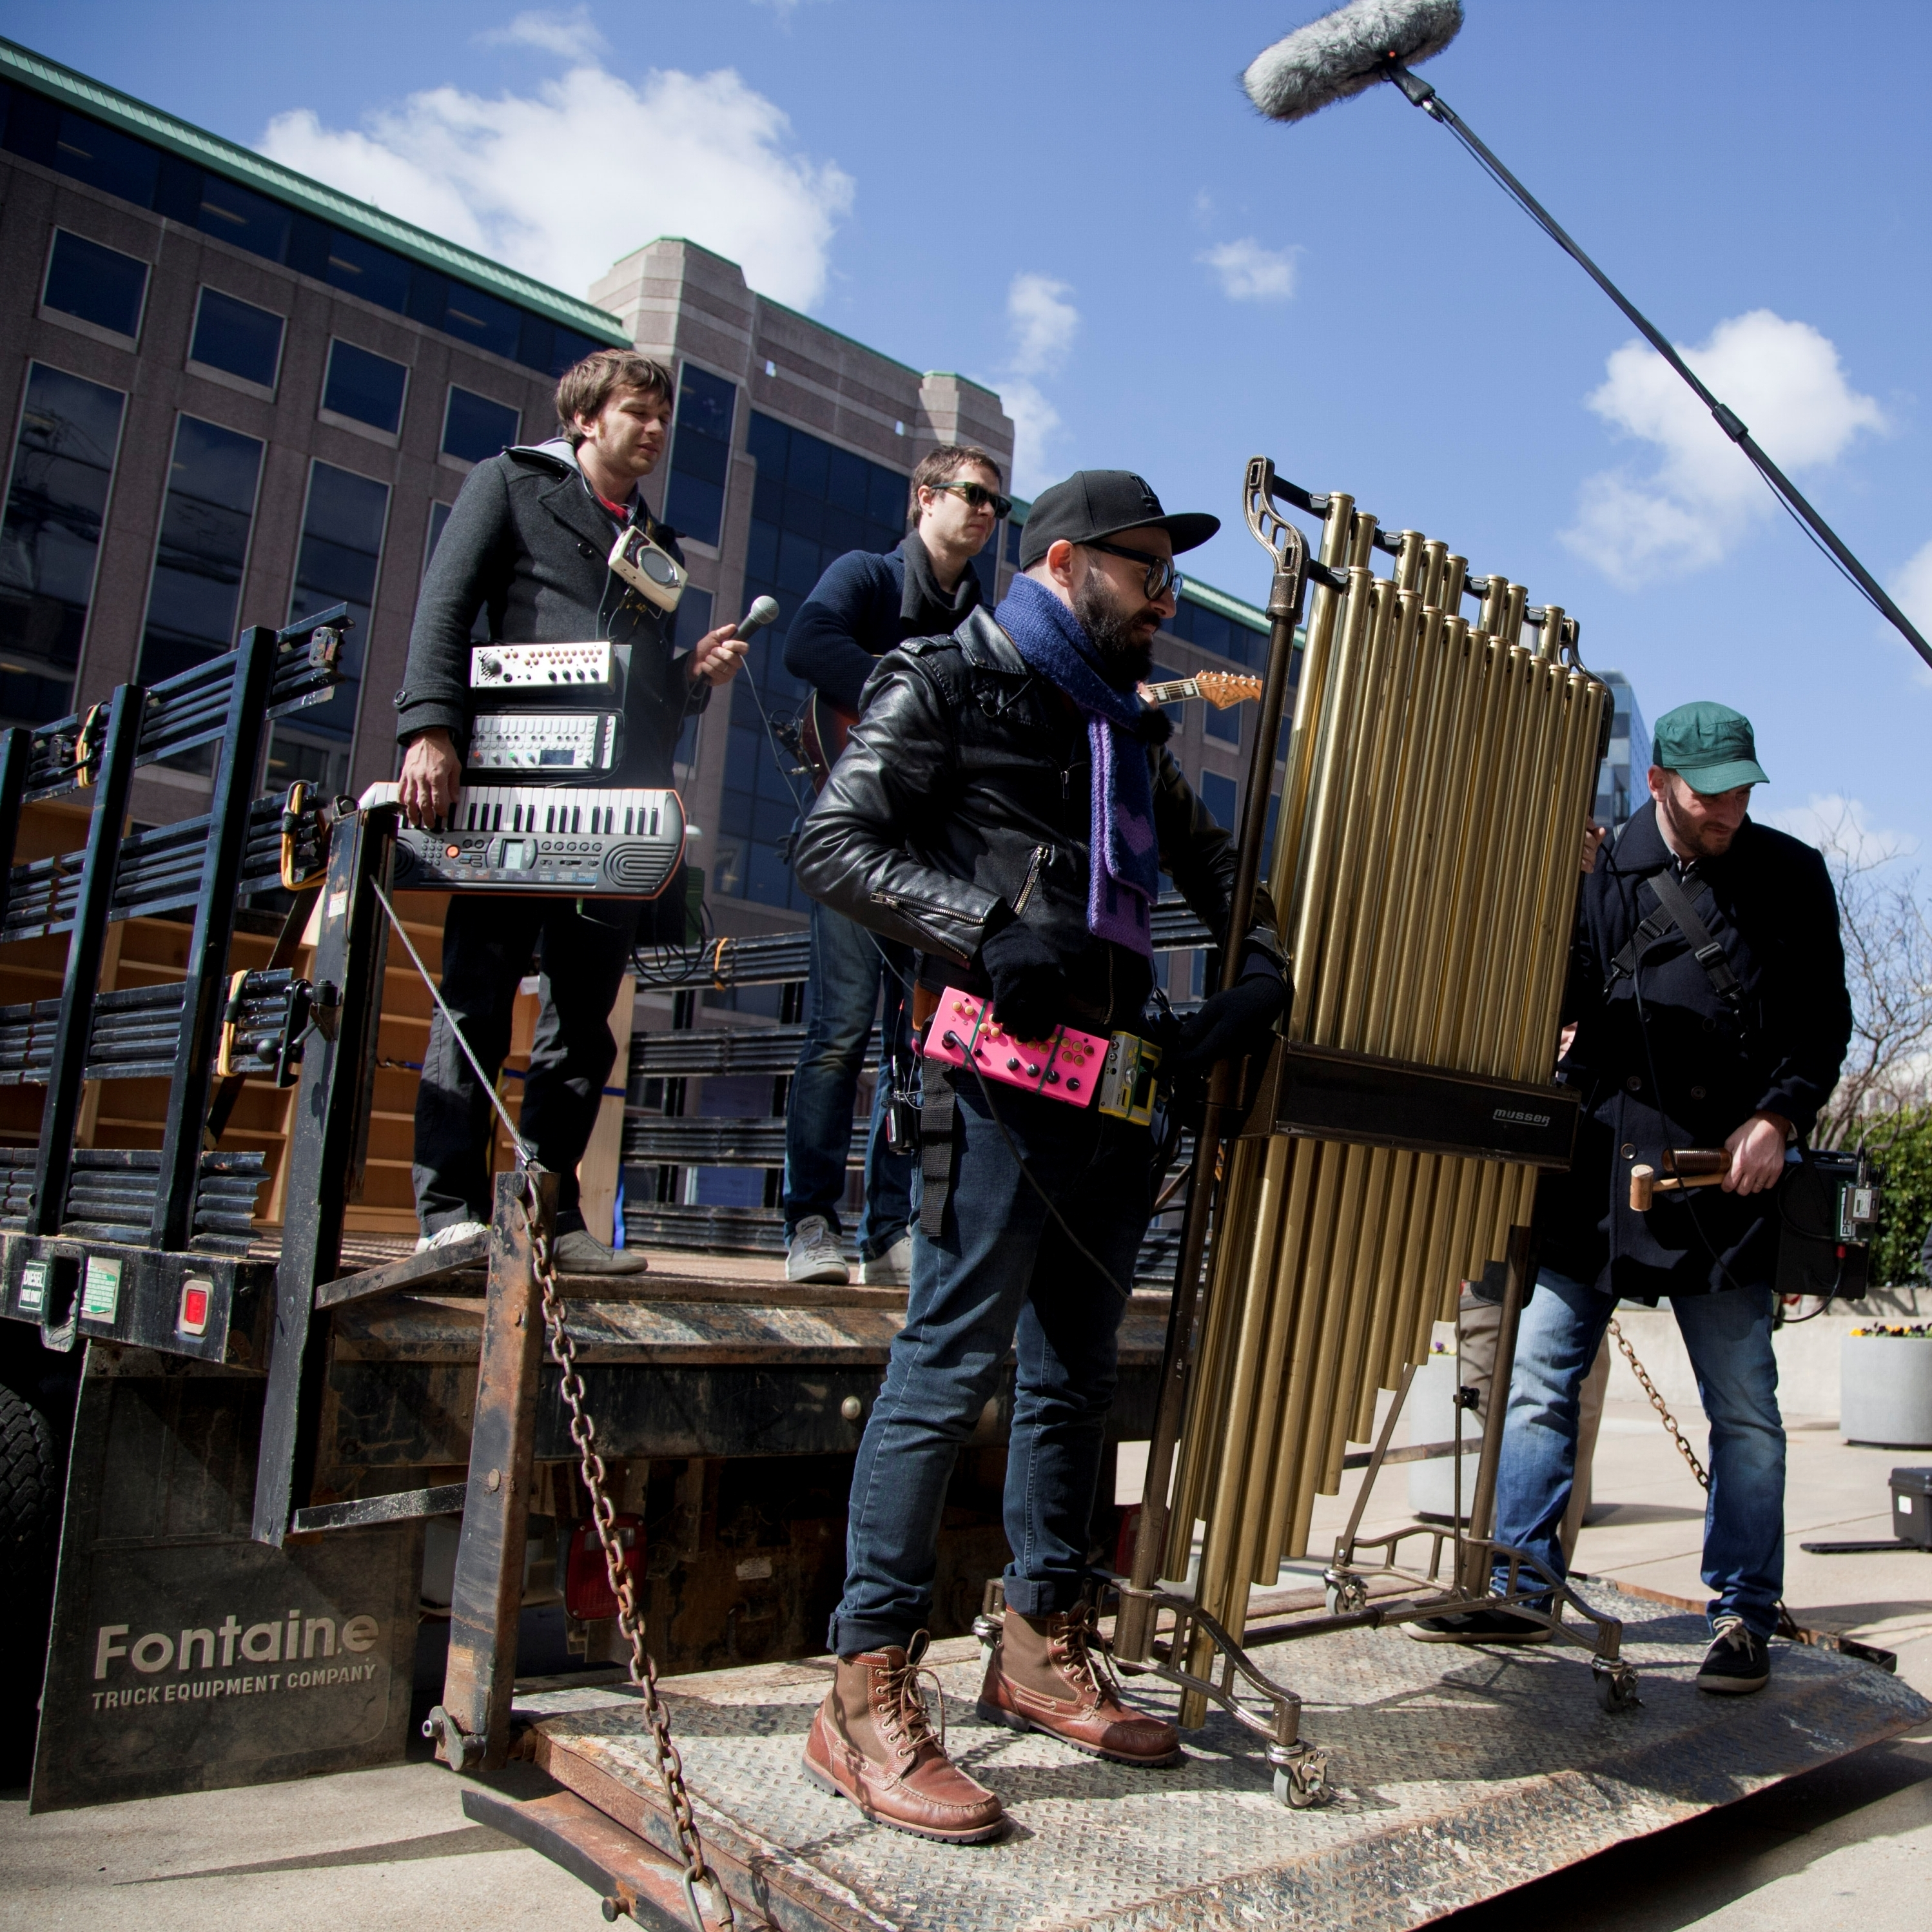 NPR Music's Mito Habe-Evans (bottom right) holds the digital clapperboard before a take outside NPR's old headquarters.